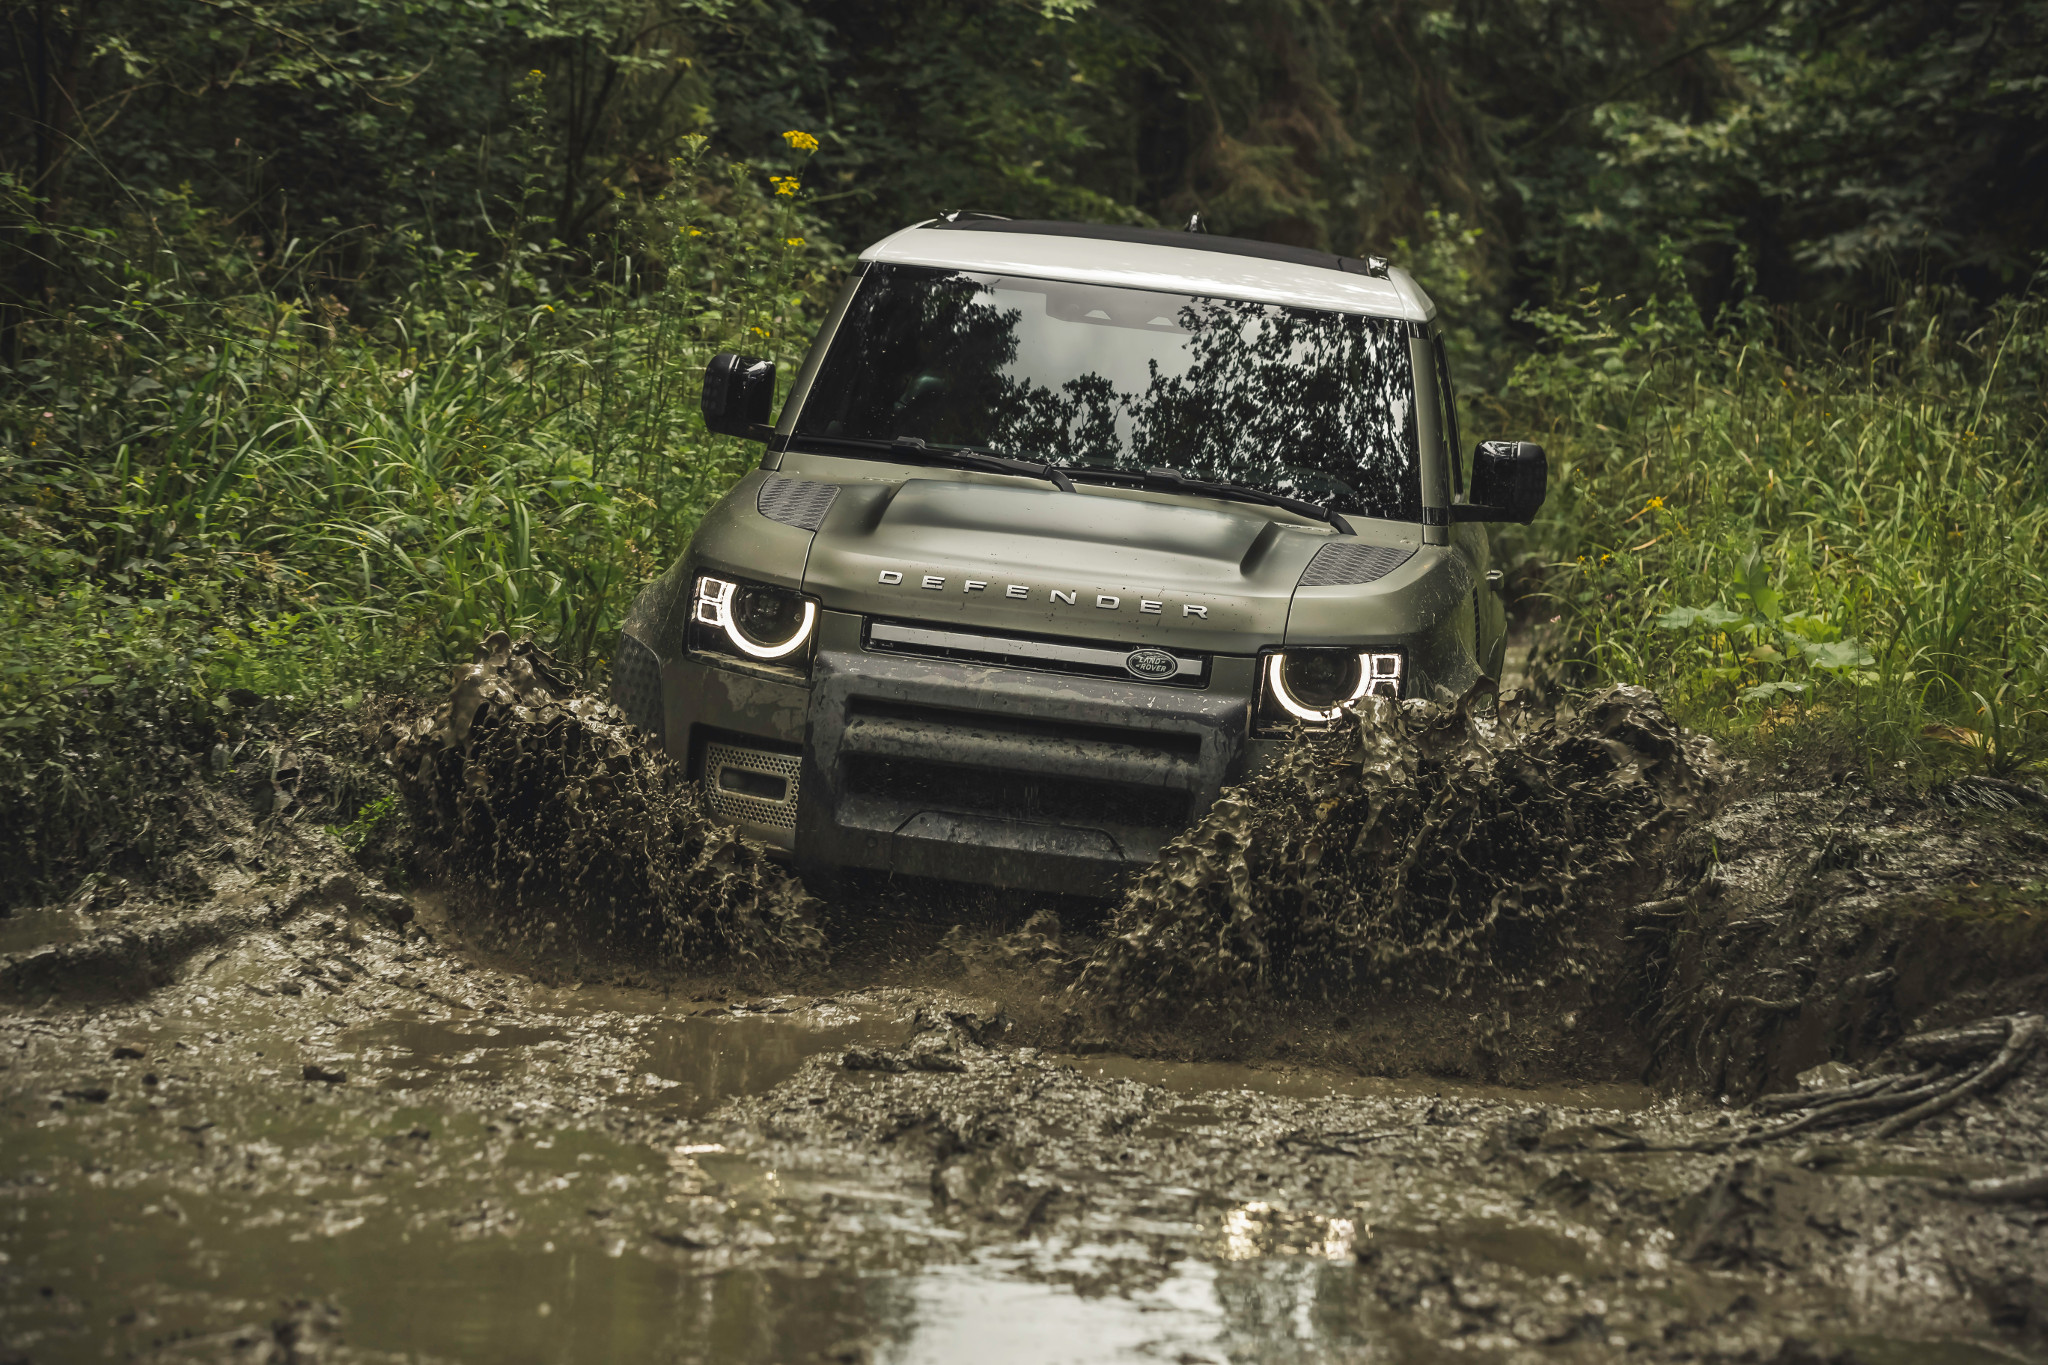 land-rover-defender-2020-02-angle--dynamic--exterior--front--green--off-road.JPG